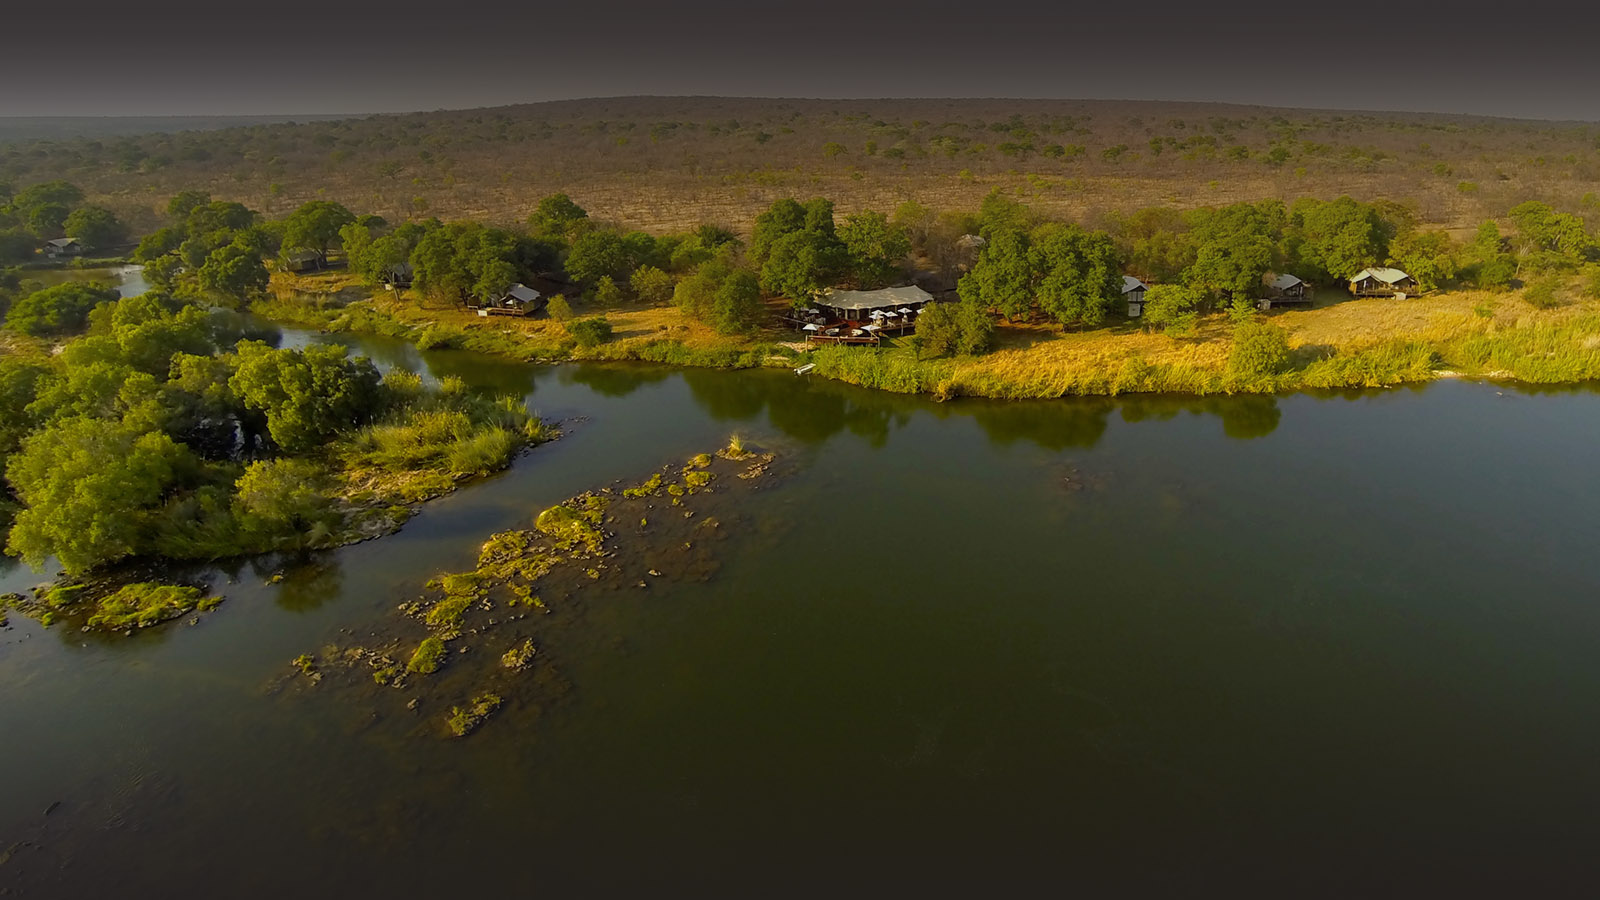 zambezi sands river camp victoria-falls-zimbabwe-accommodation-imvelo-safari-lodges-zambezi-national-park-aerial-view